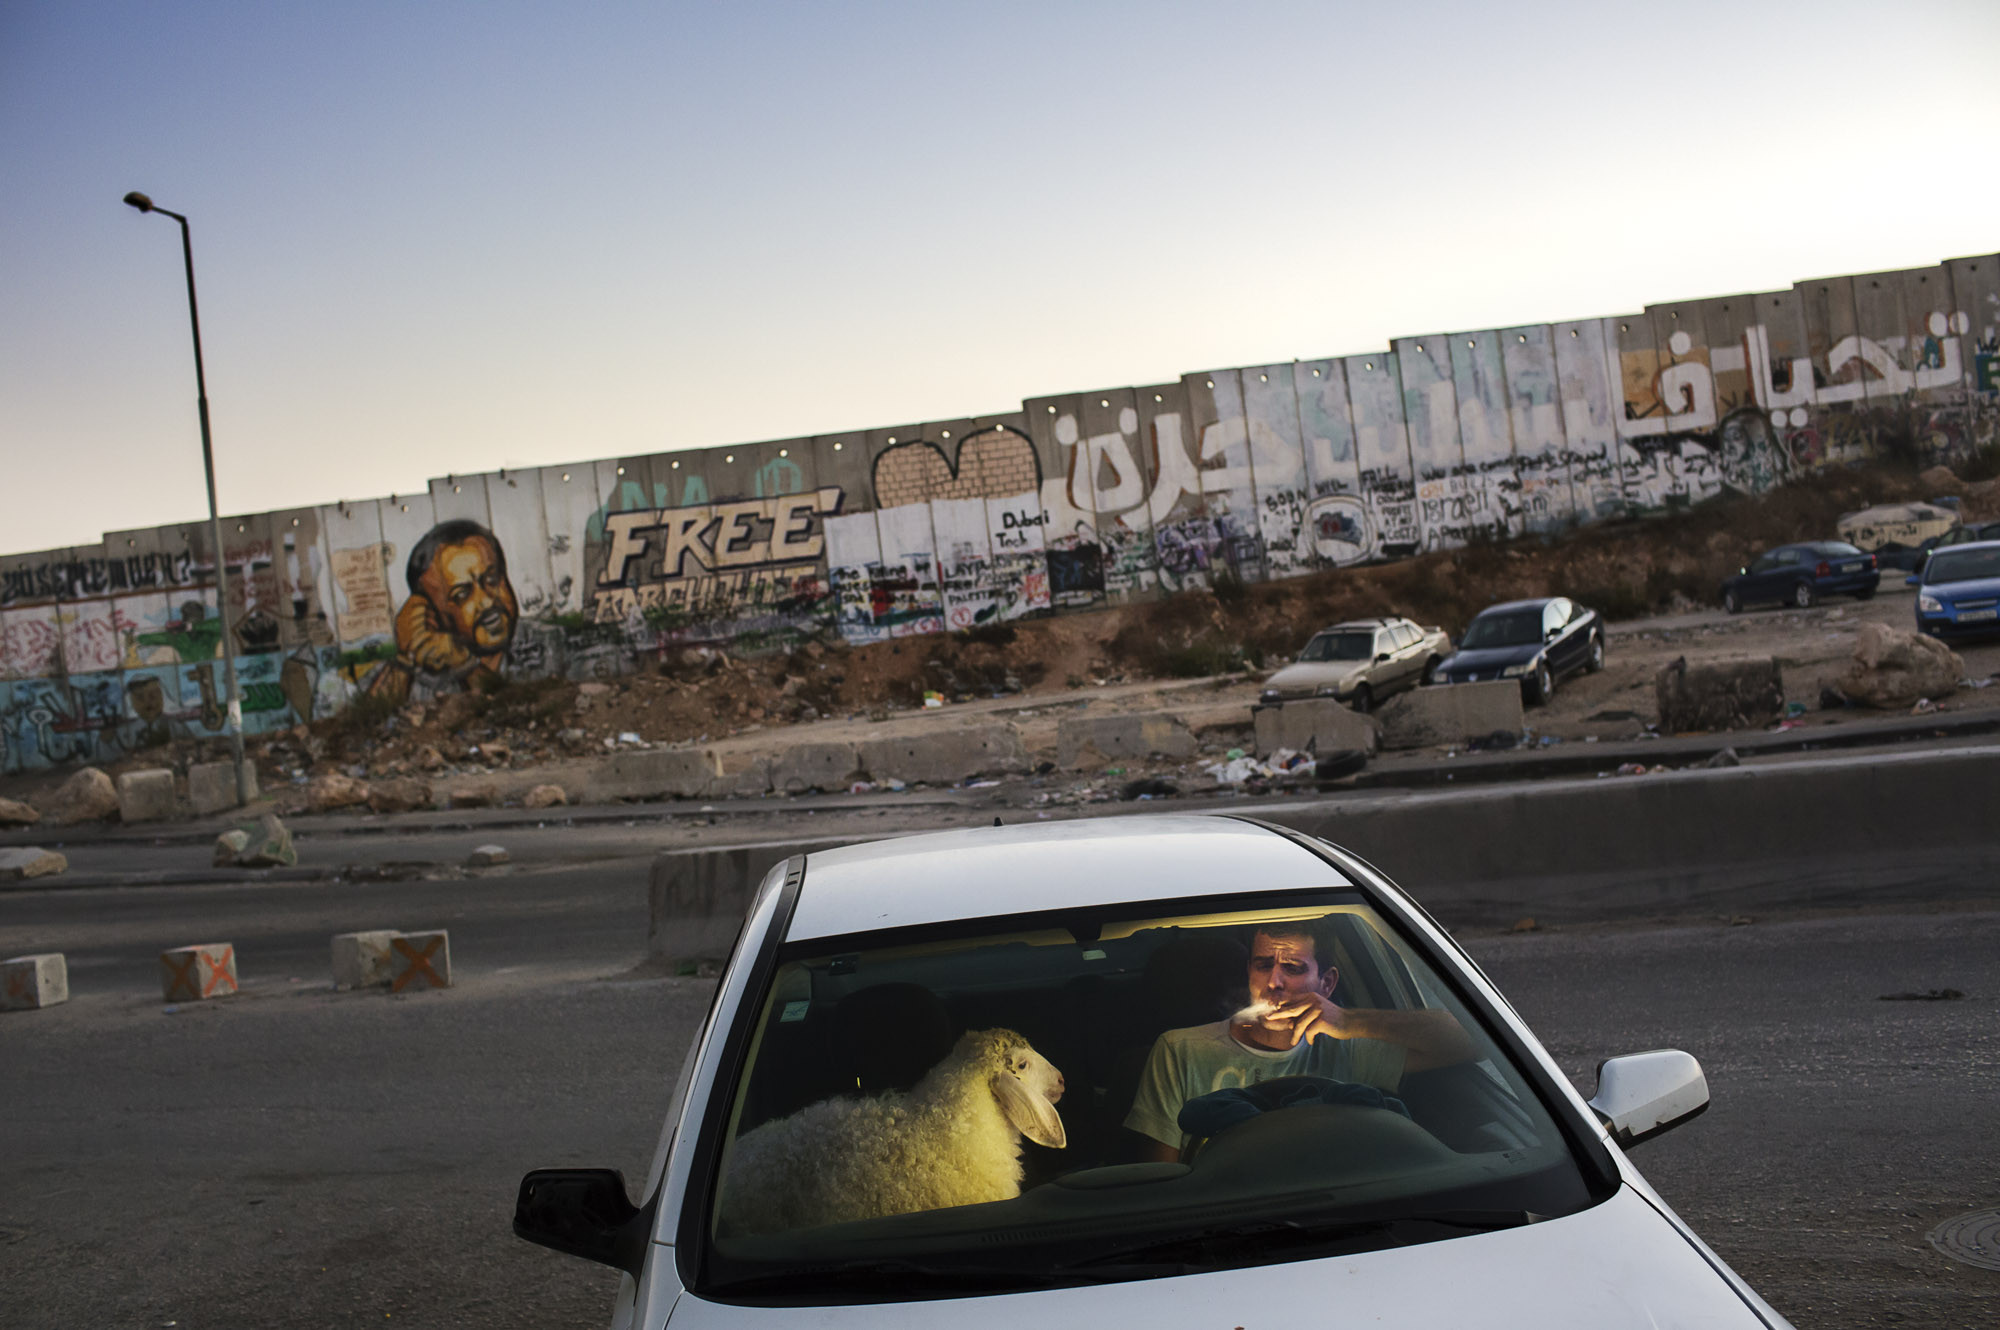 Occupied Palestinian Territories, West Bank, August 2013, After grueling traffic at the Qalandia checkpoint, a young man enjoys a cigarette in his car as traffic finally clears on the last evening of Ramadan.